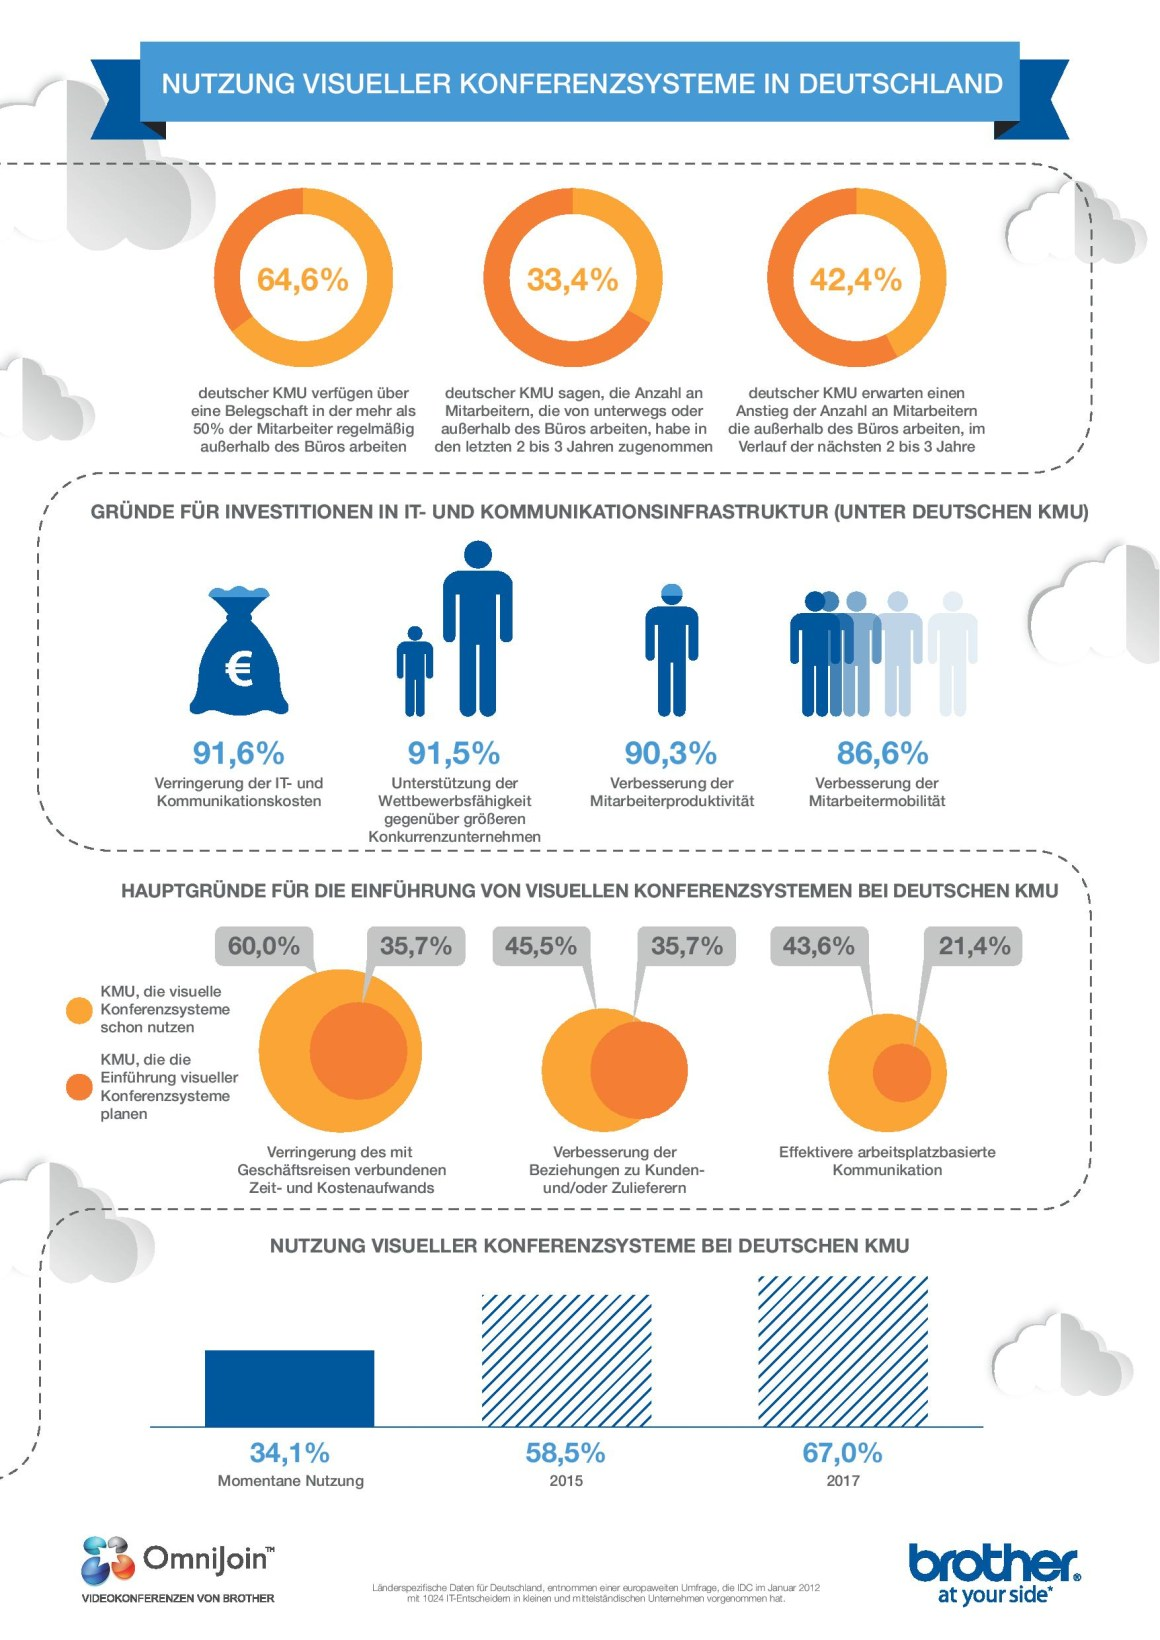 teleconferencing-infographic-german